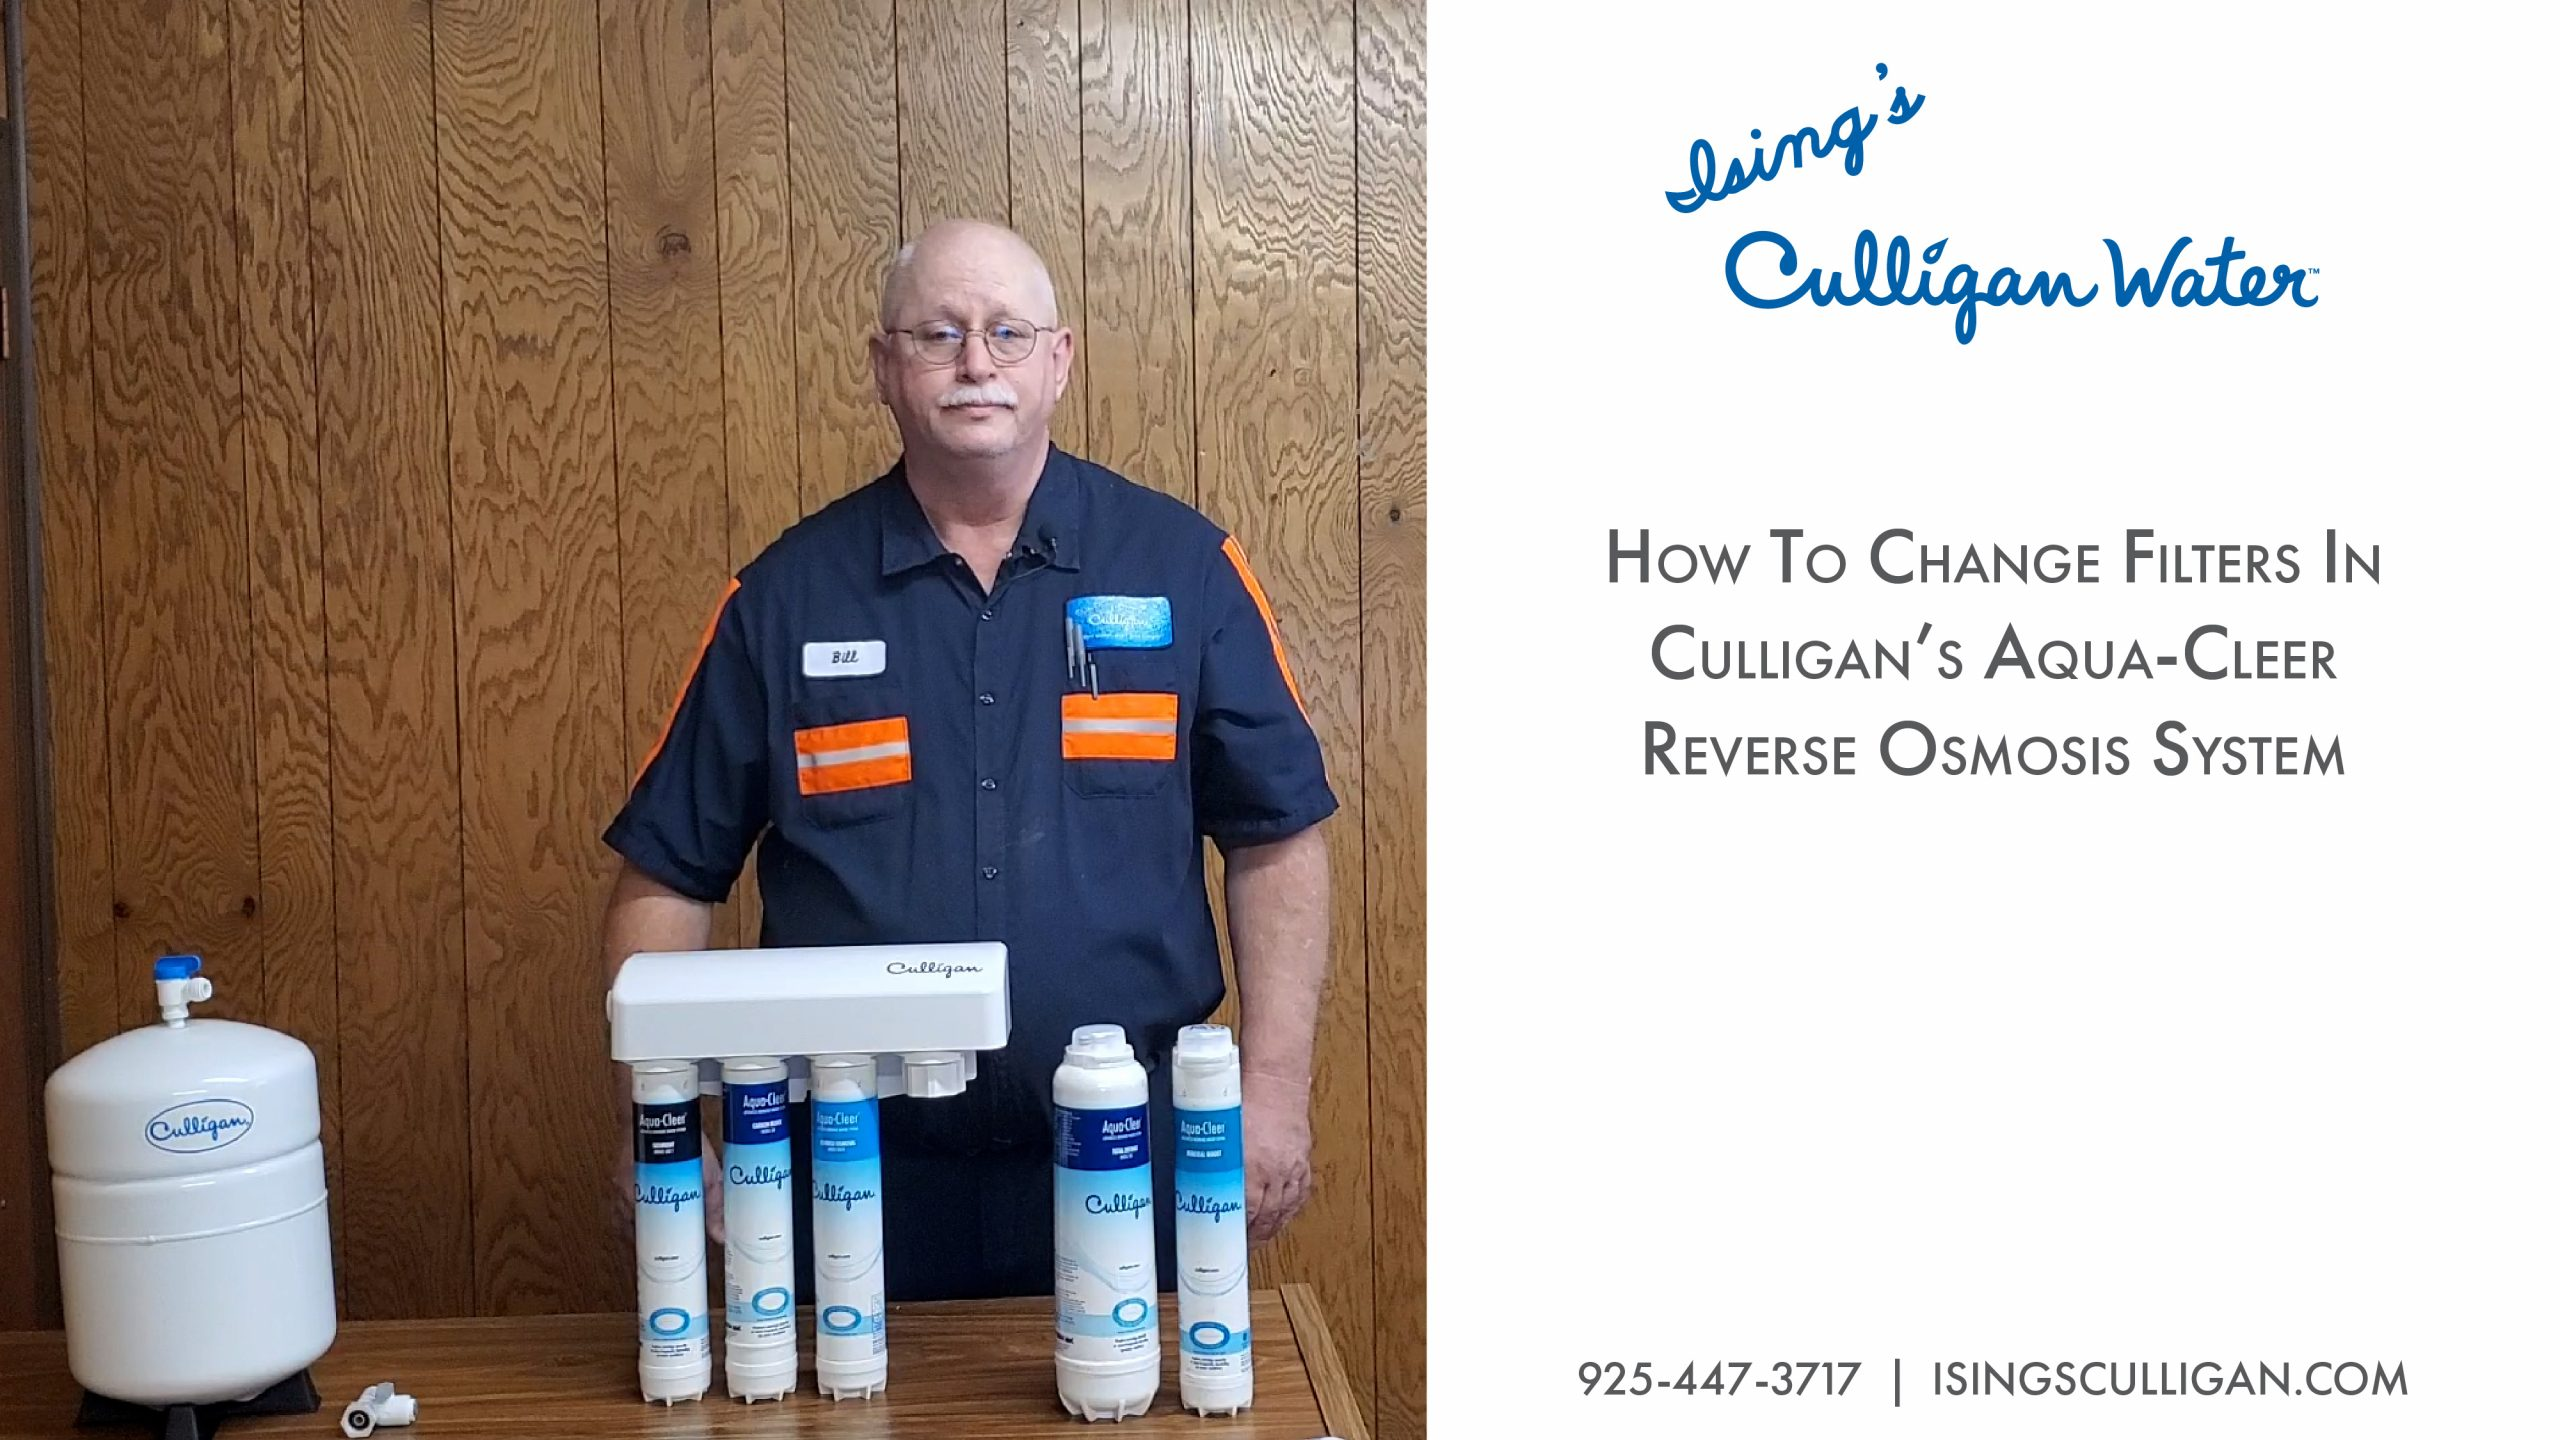 How to change filters in Culligan's Aqua Cleer Reverse Osmosis System